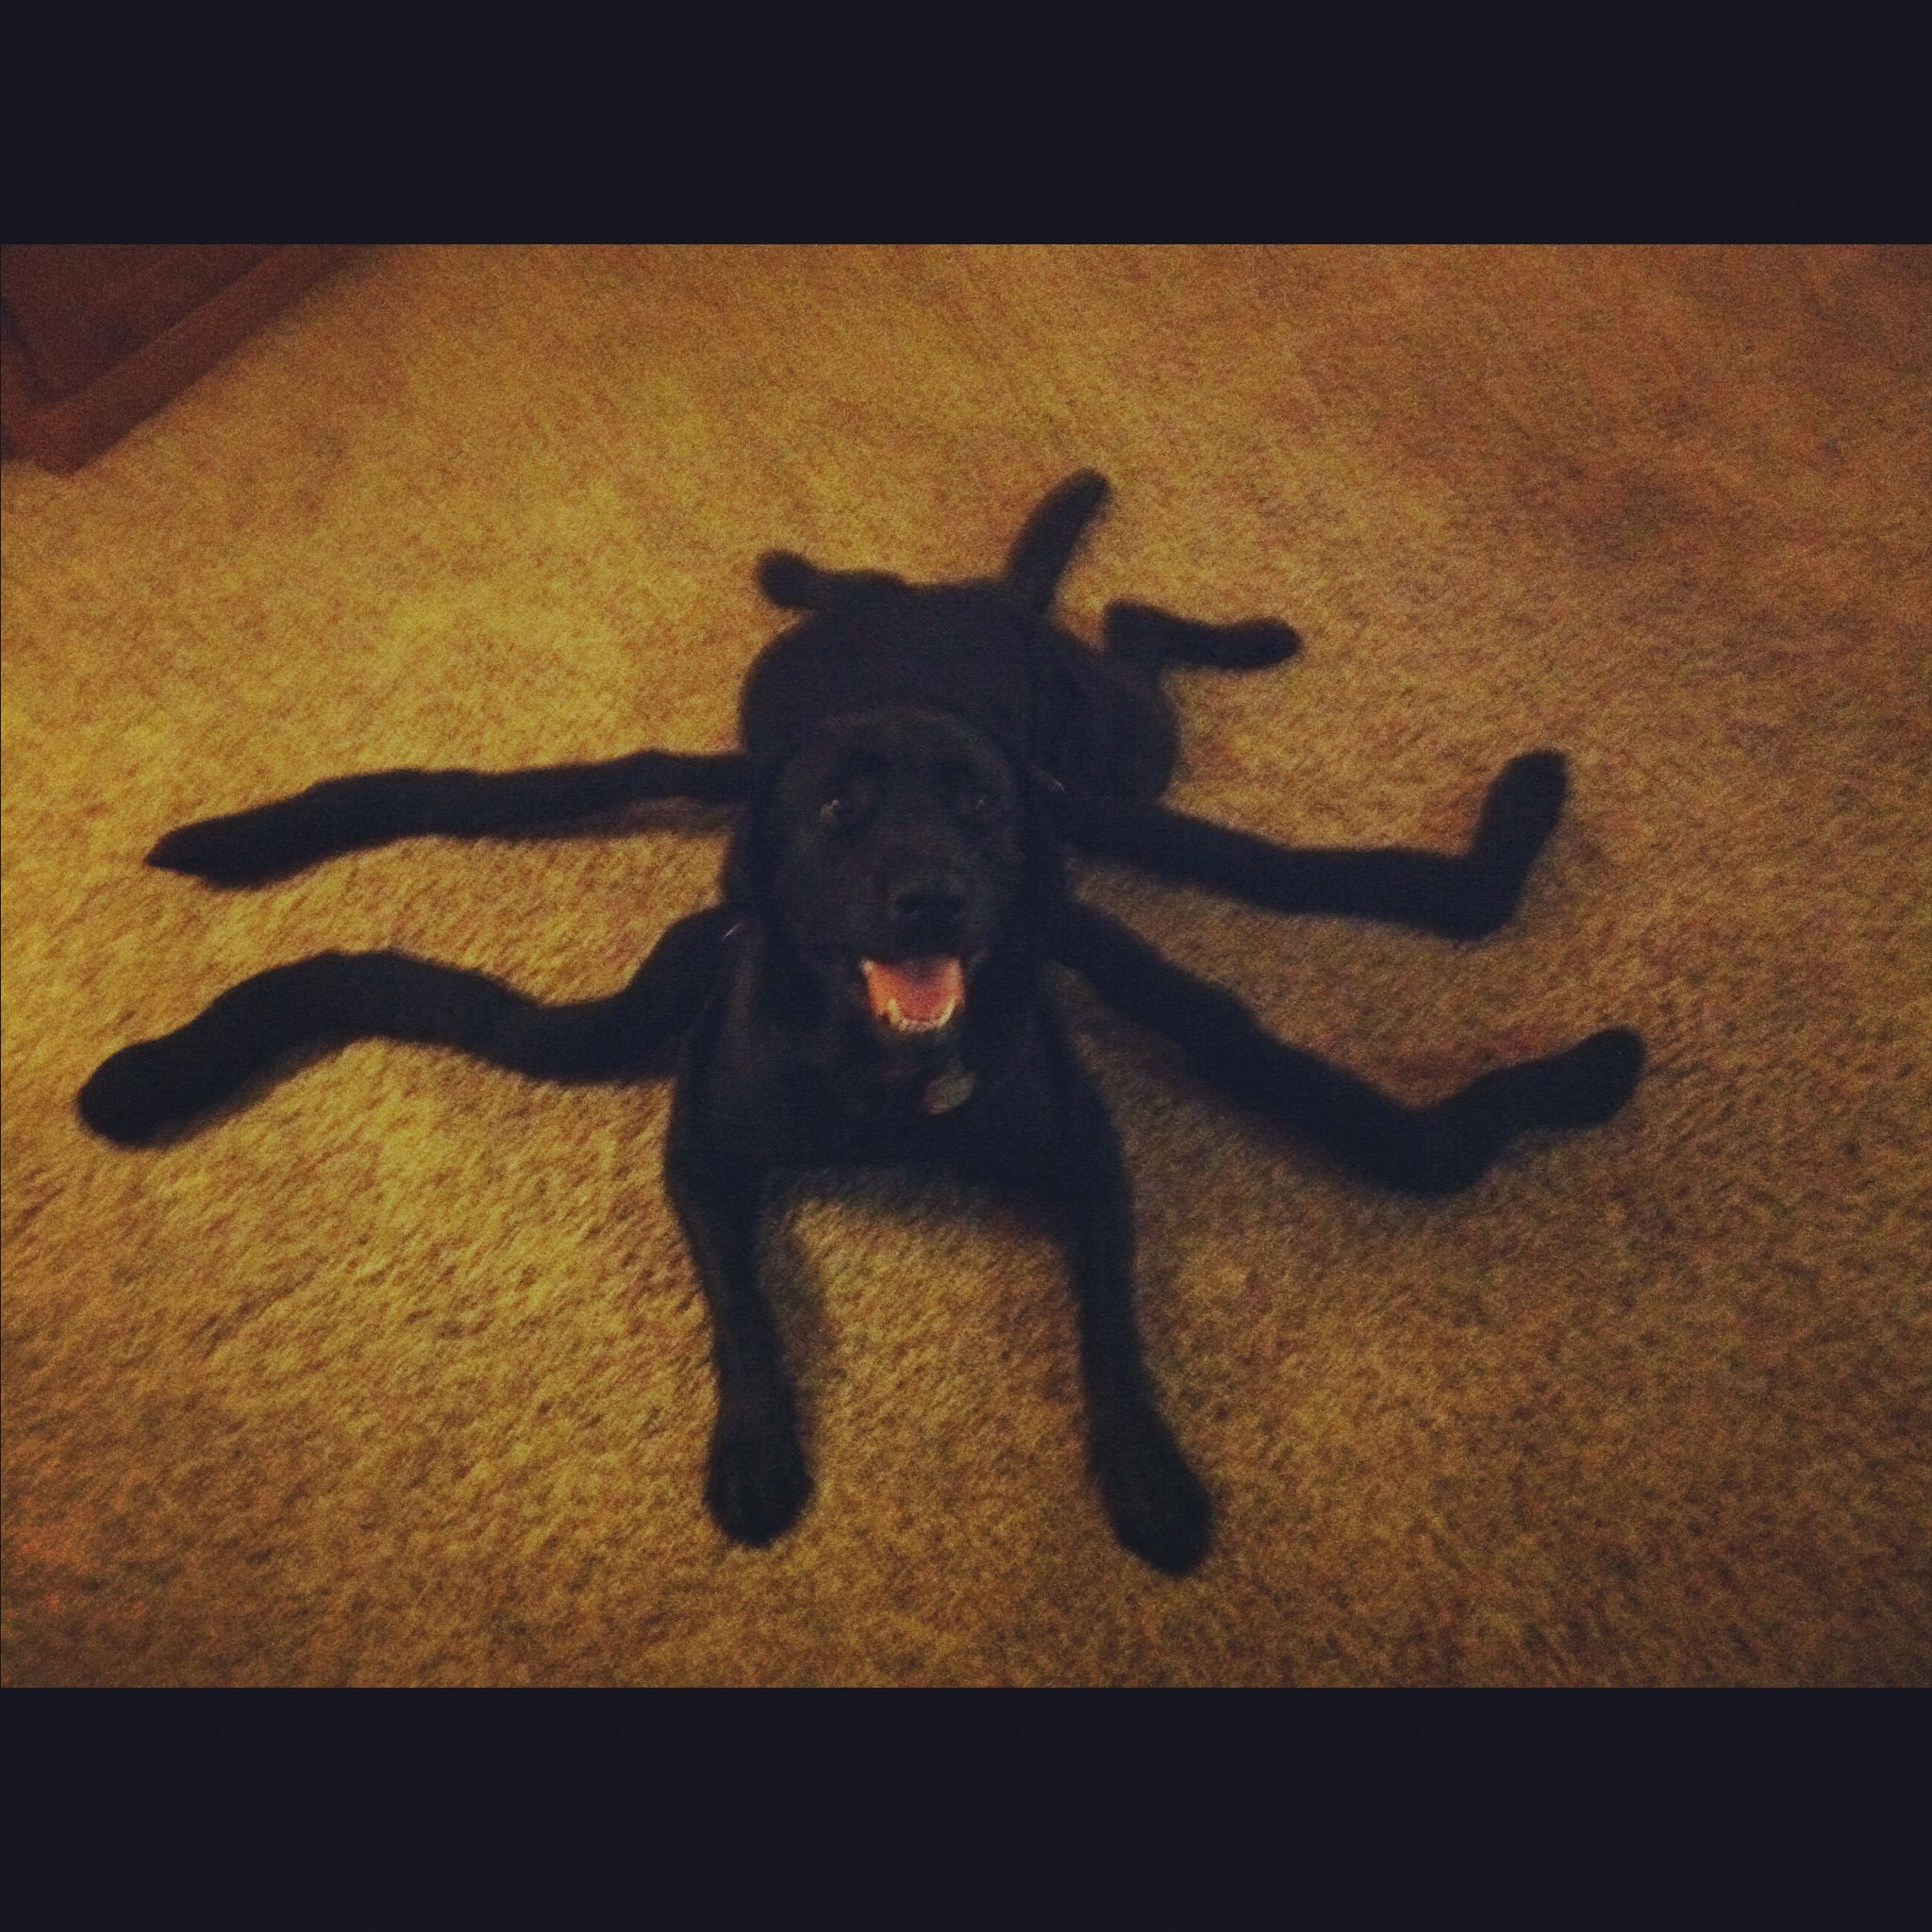 Black Widow Lab Shay O Donnell Obrock Finn S Halloween Costume